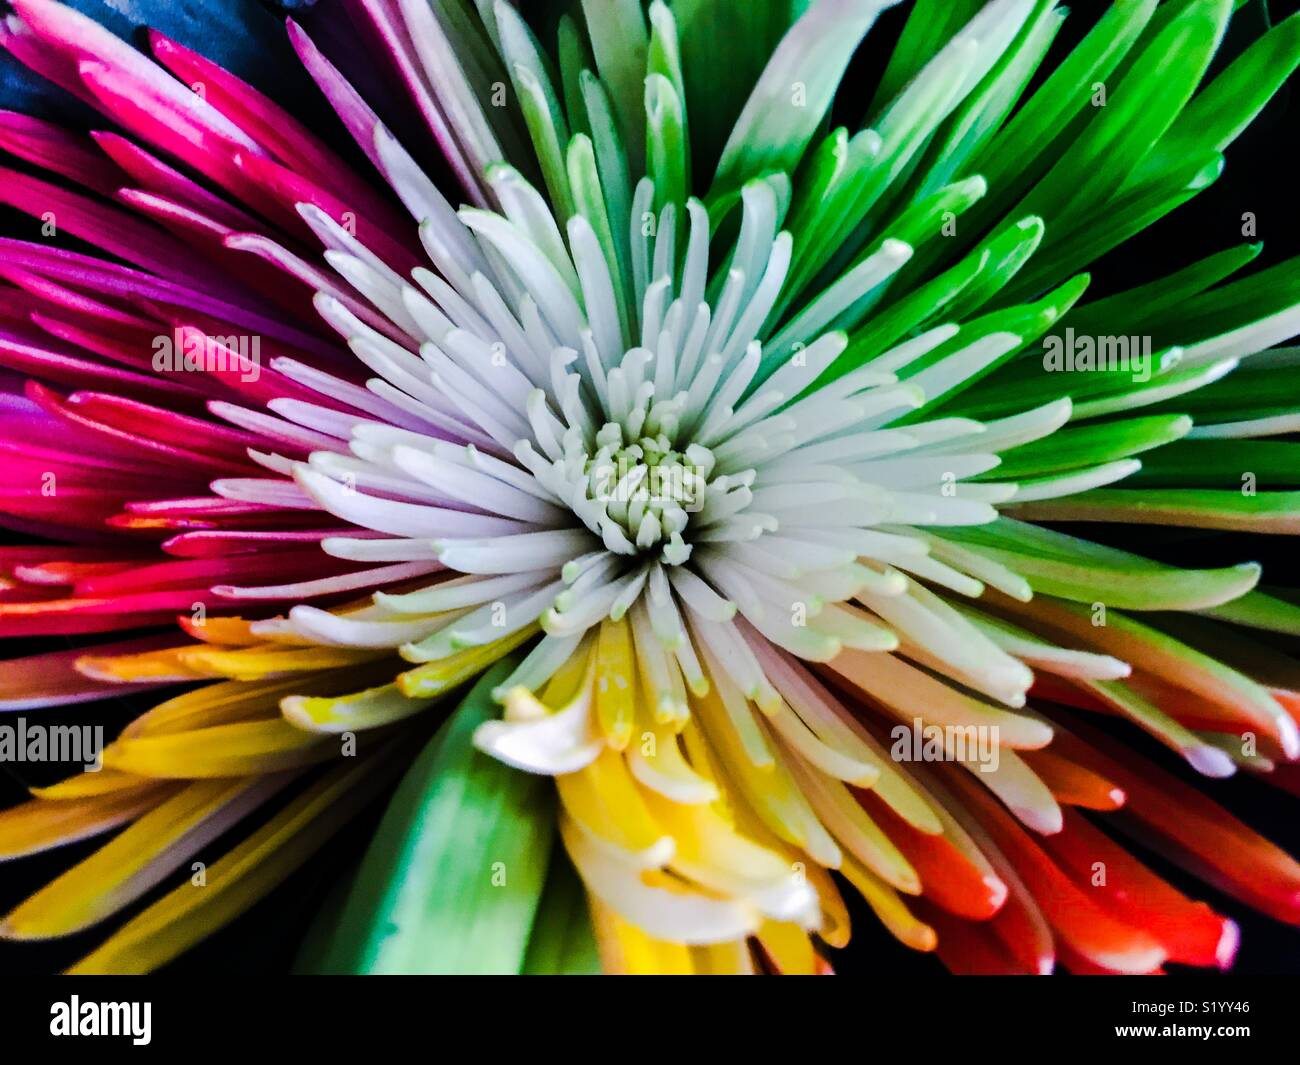 An amazing explosion of colour from a brightly multi coloured flower - Stock Image